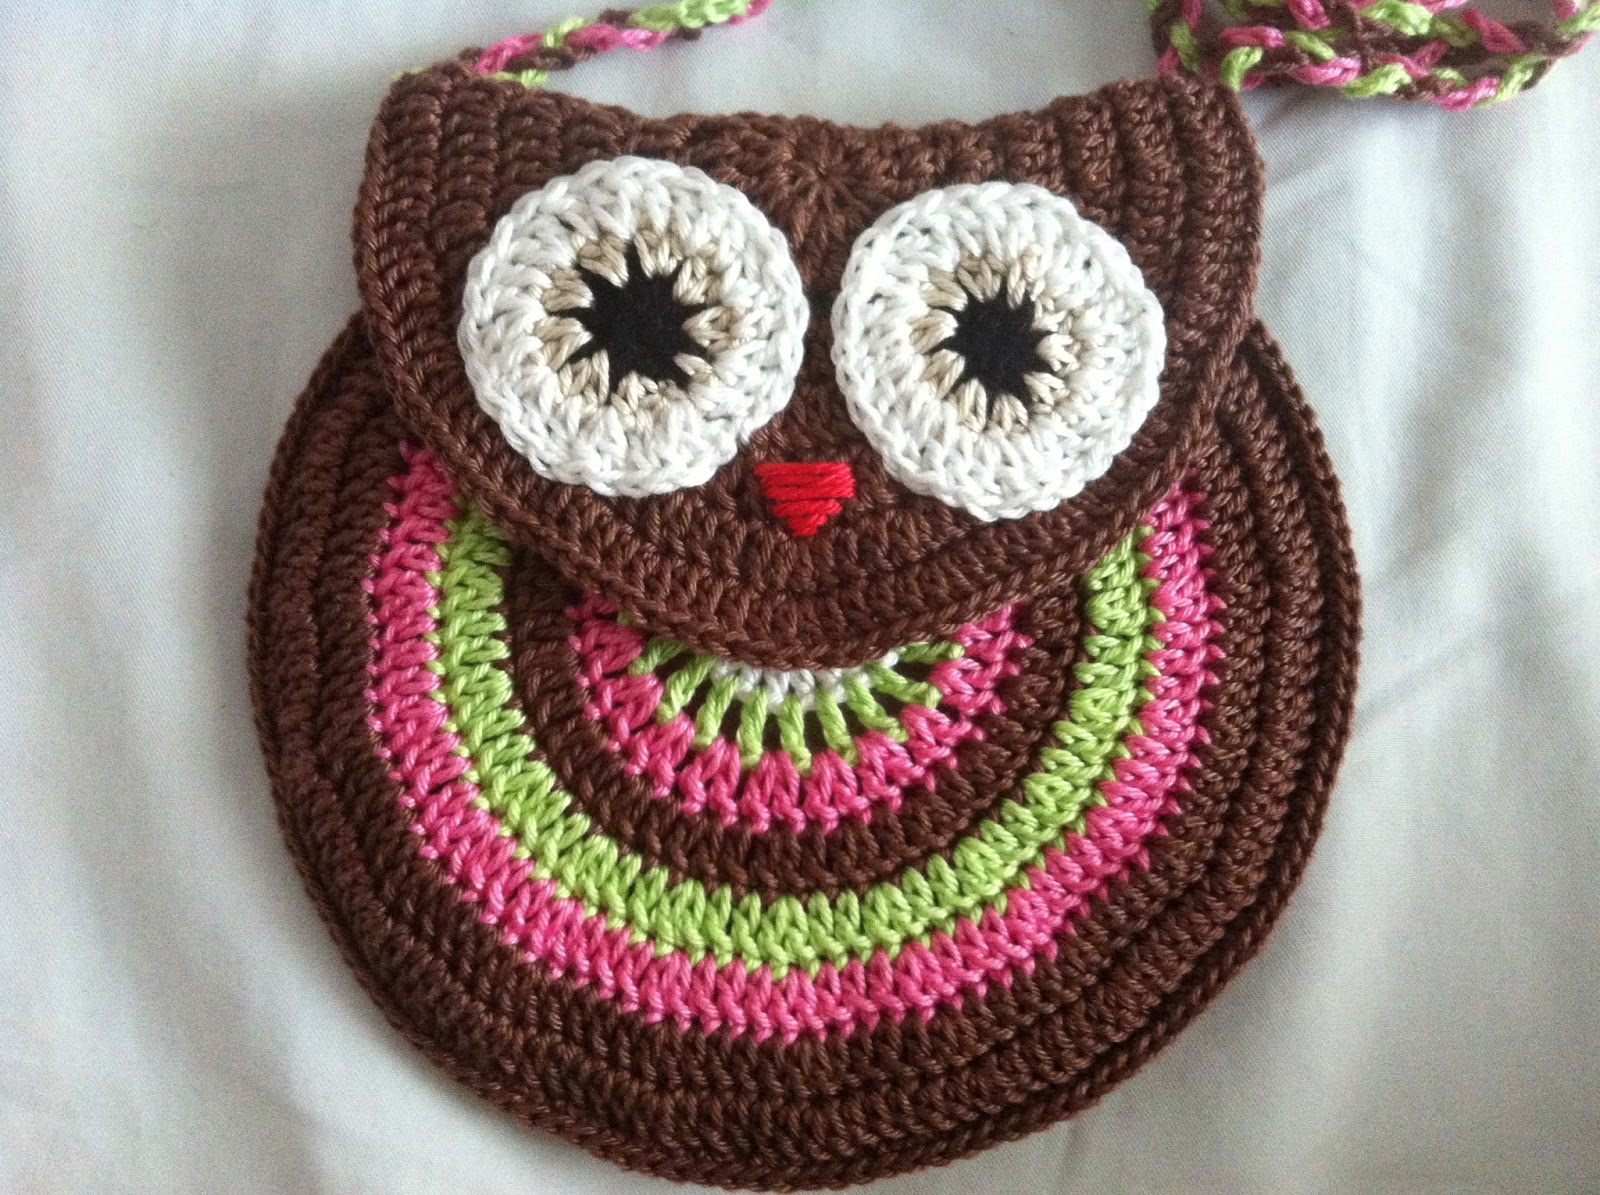 Free Crochet Patterns For Bags : 12 free crochet bag patterns Car Pictures